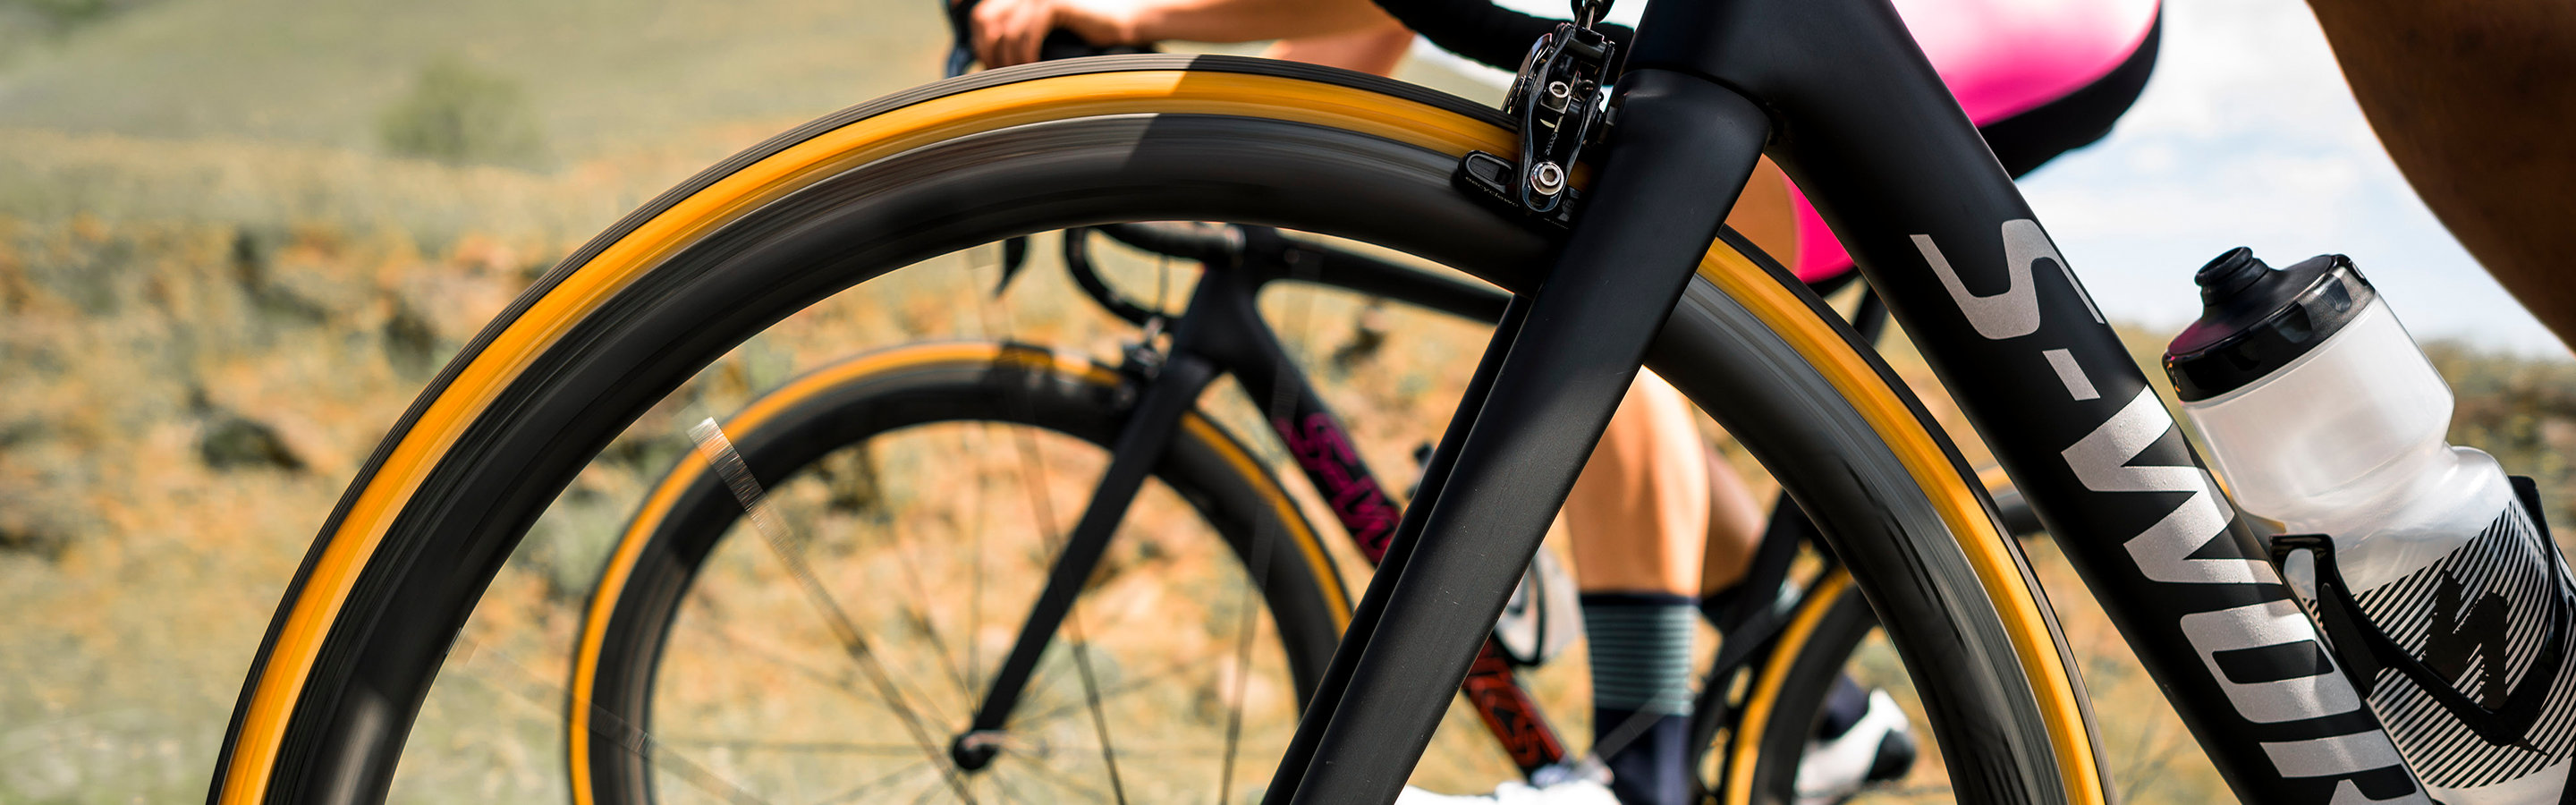 Bike Components Specialized Com